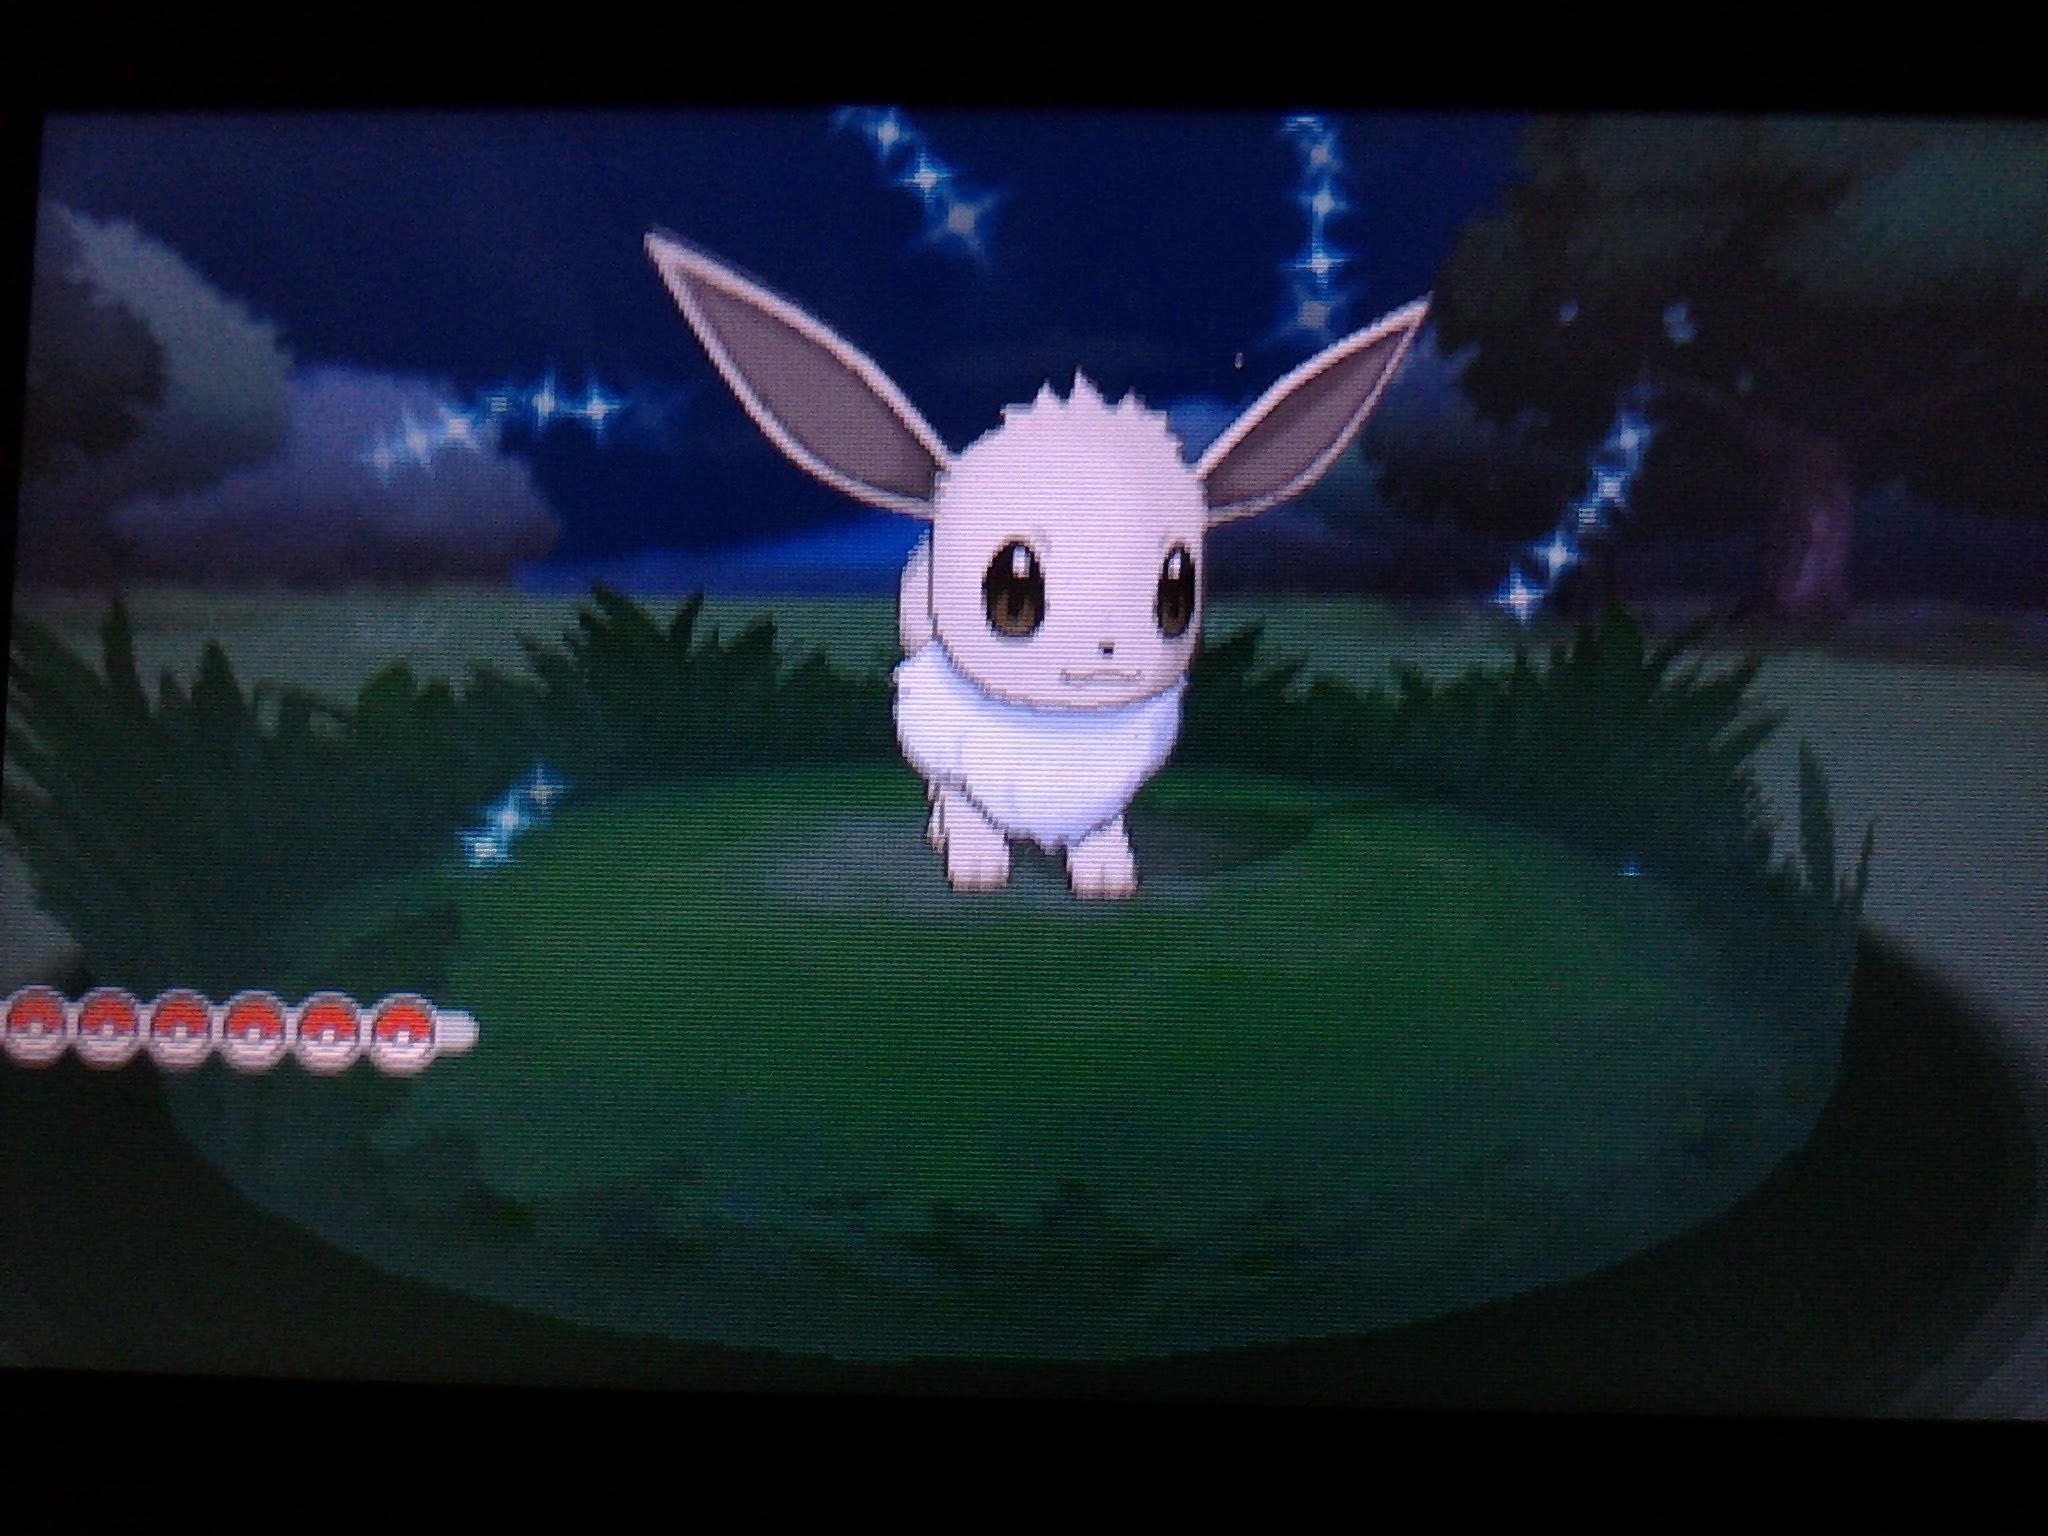 Live shiny Eevee after only 40 REs!